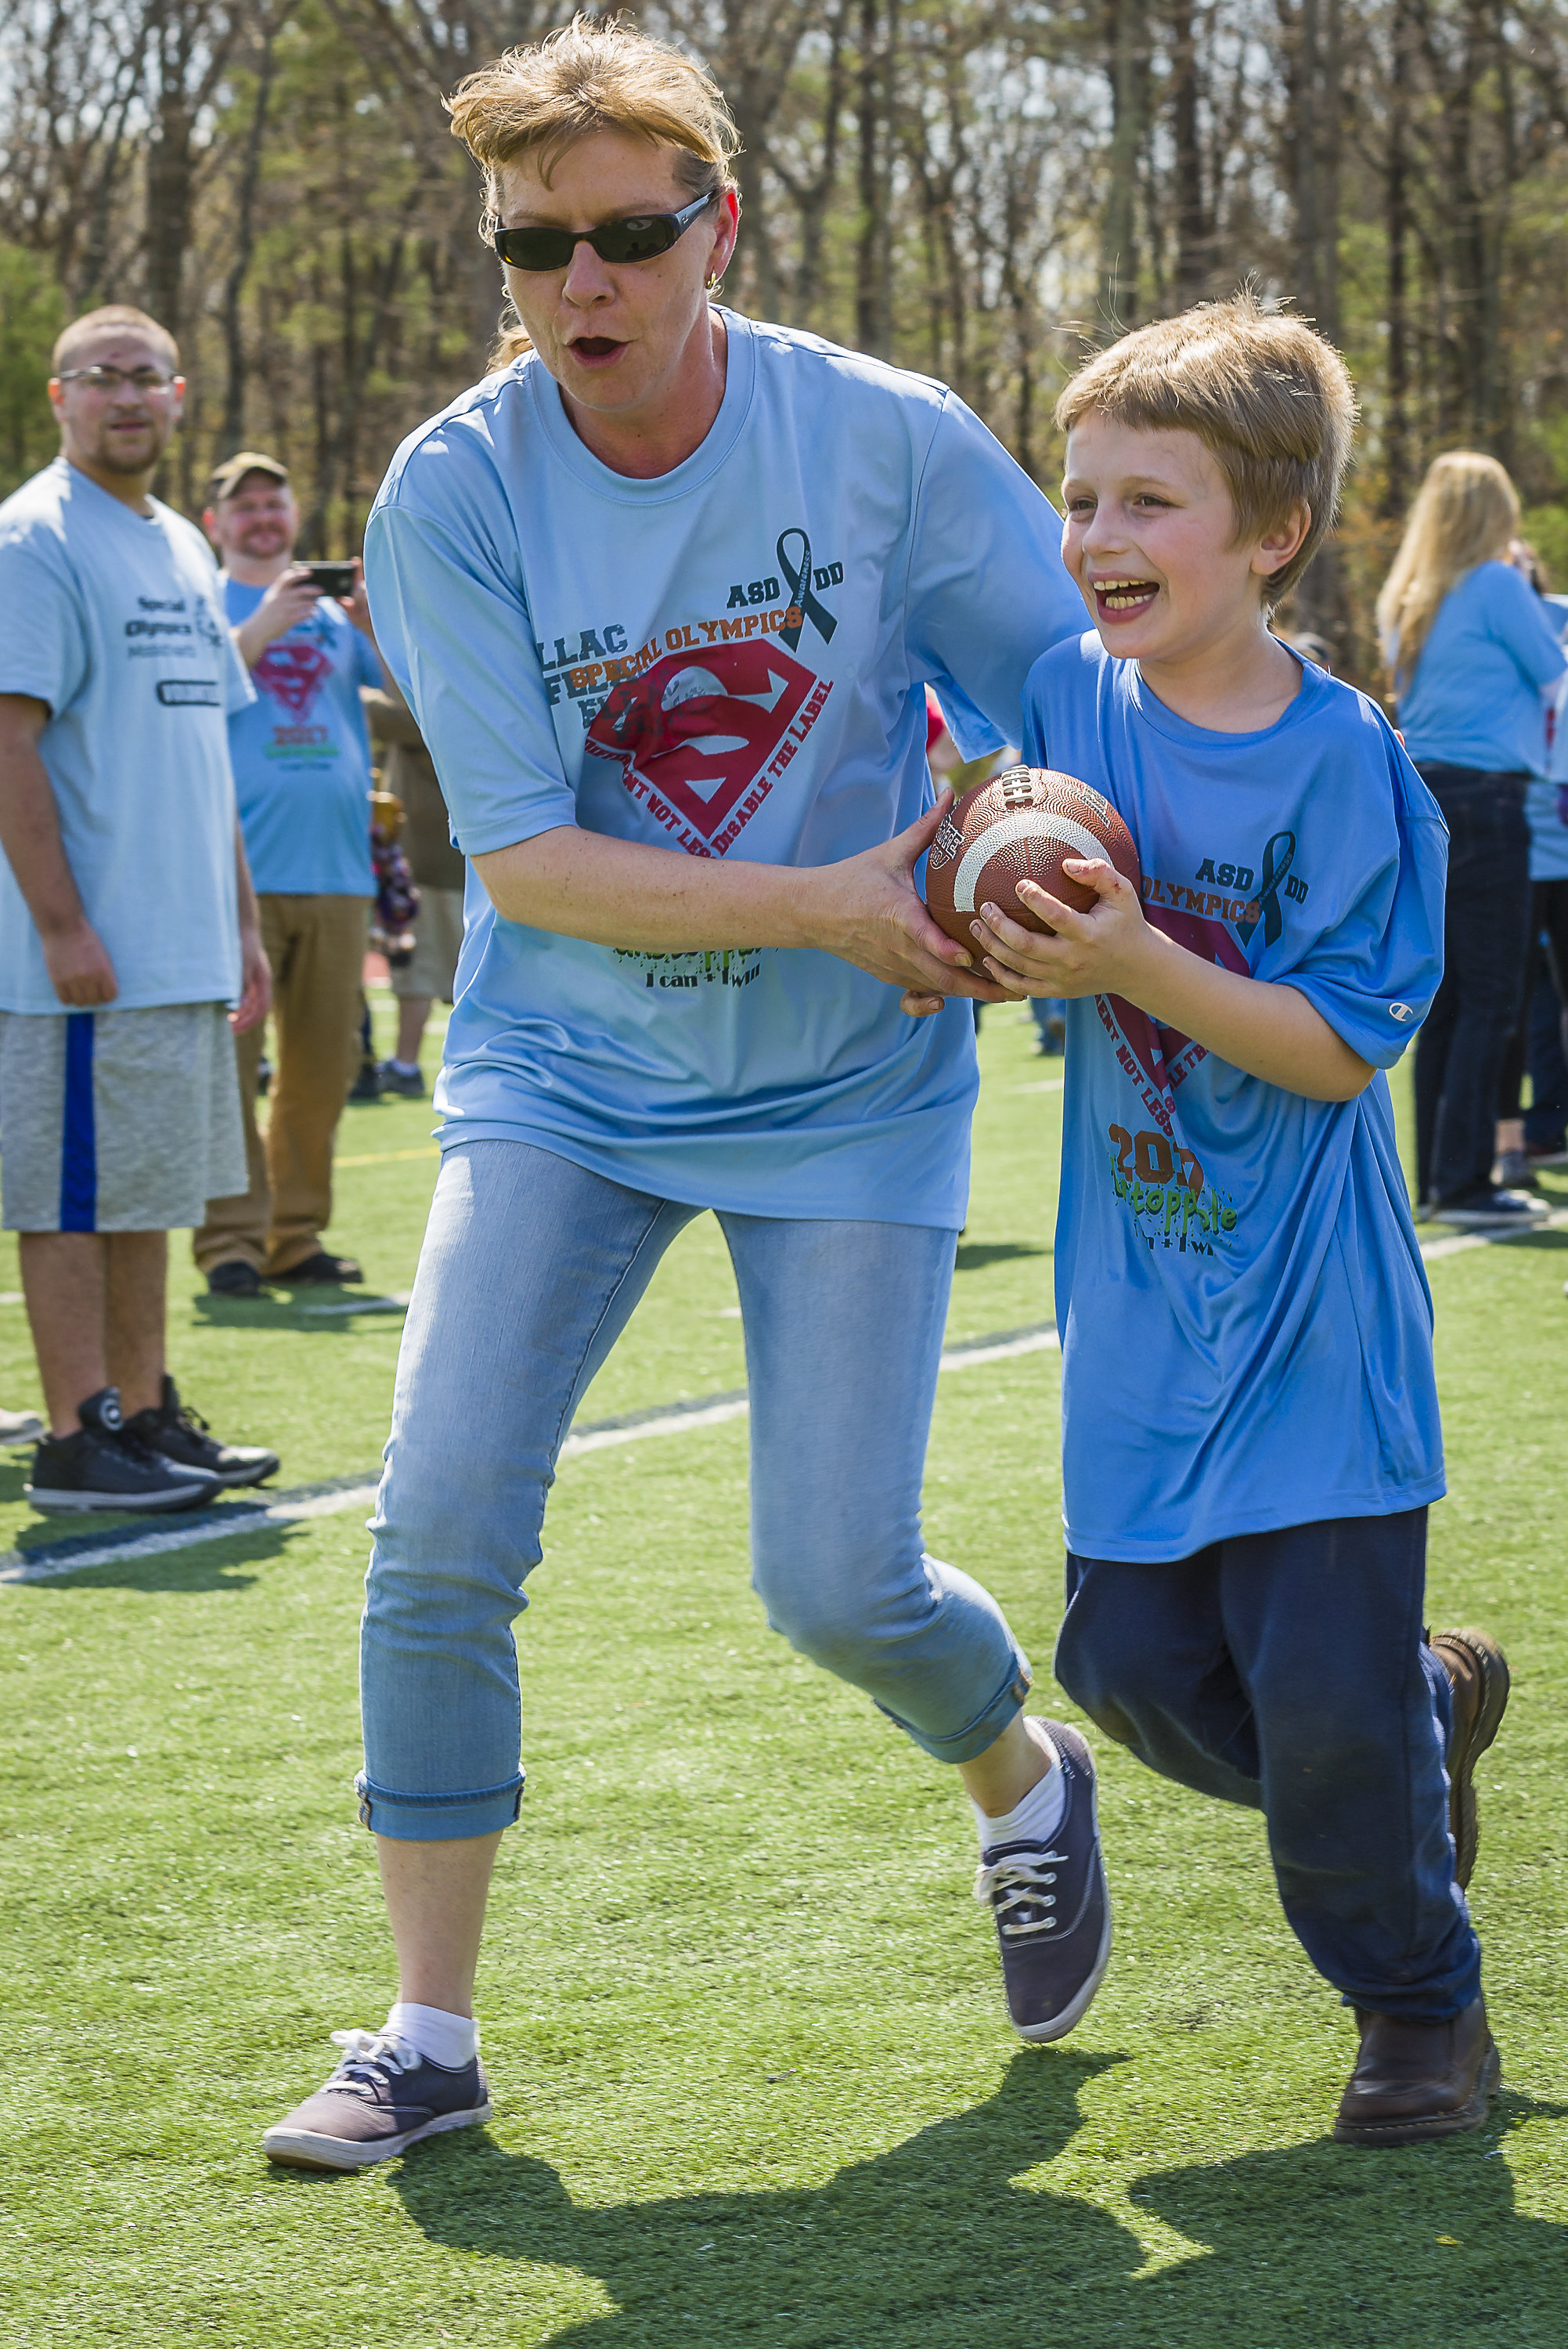 Student running with football.